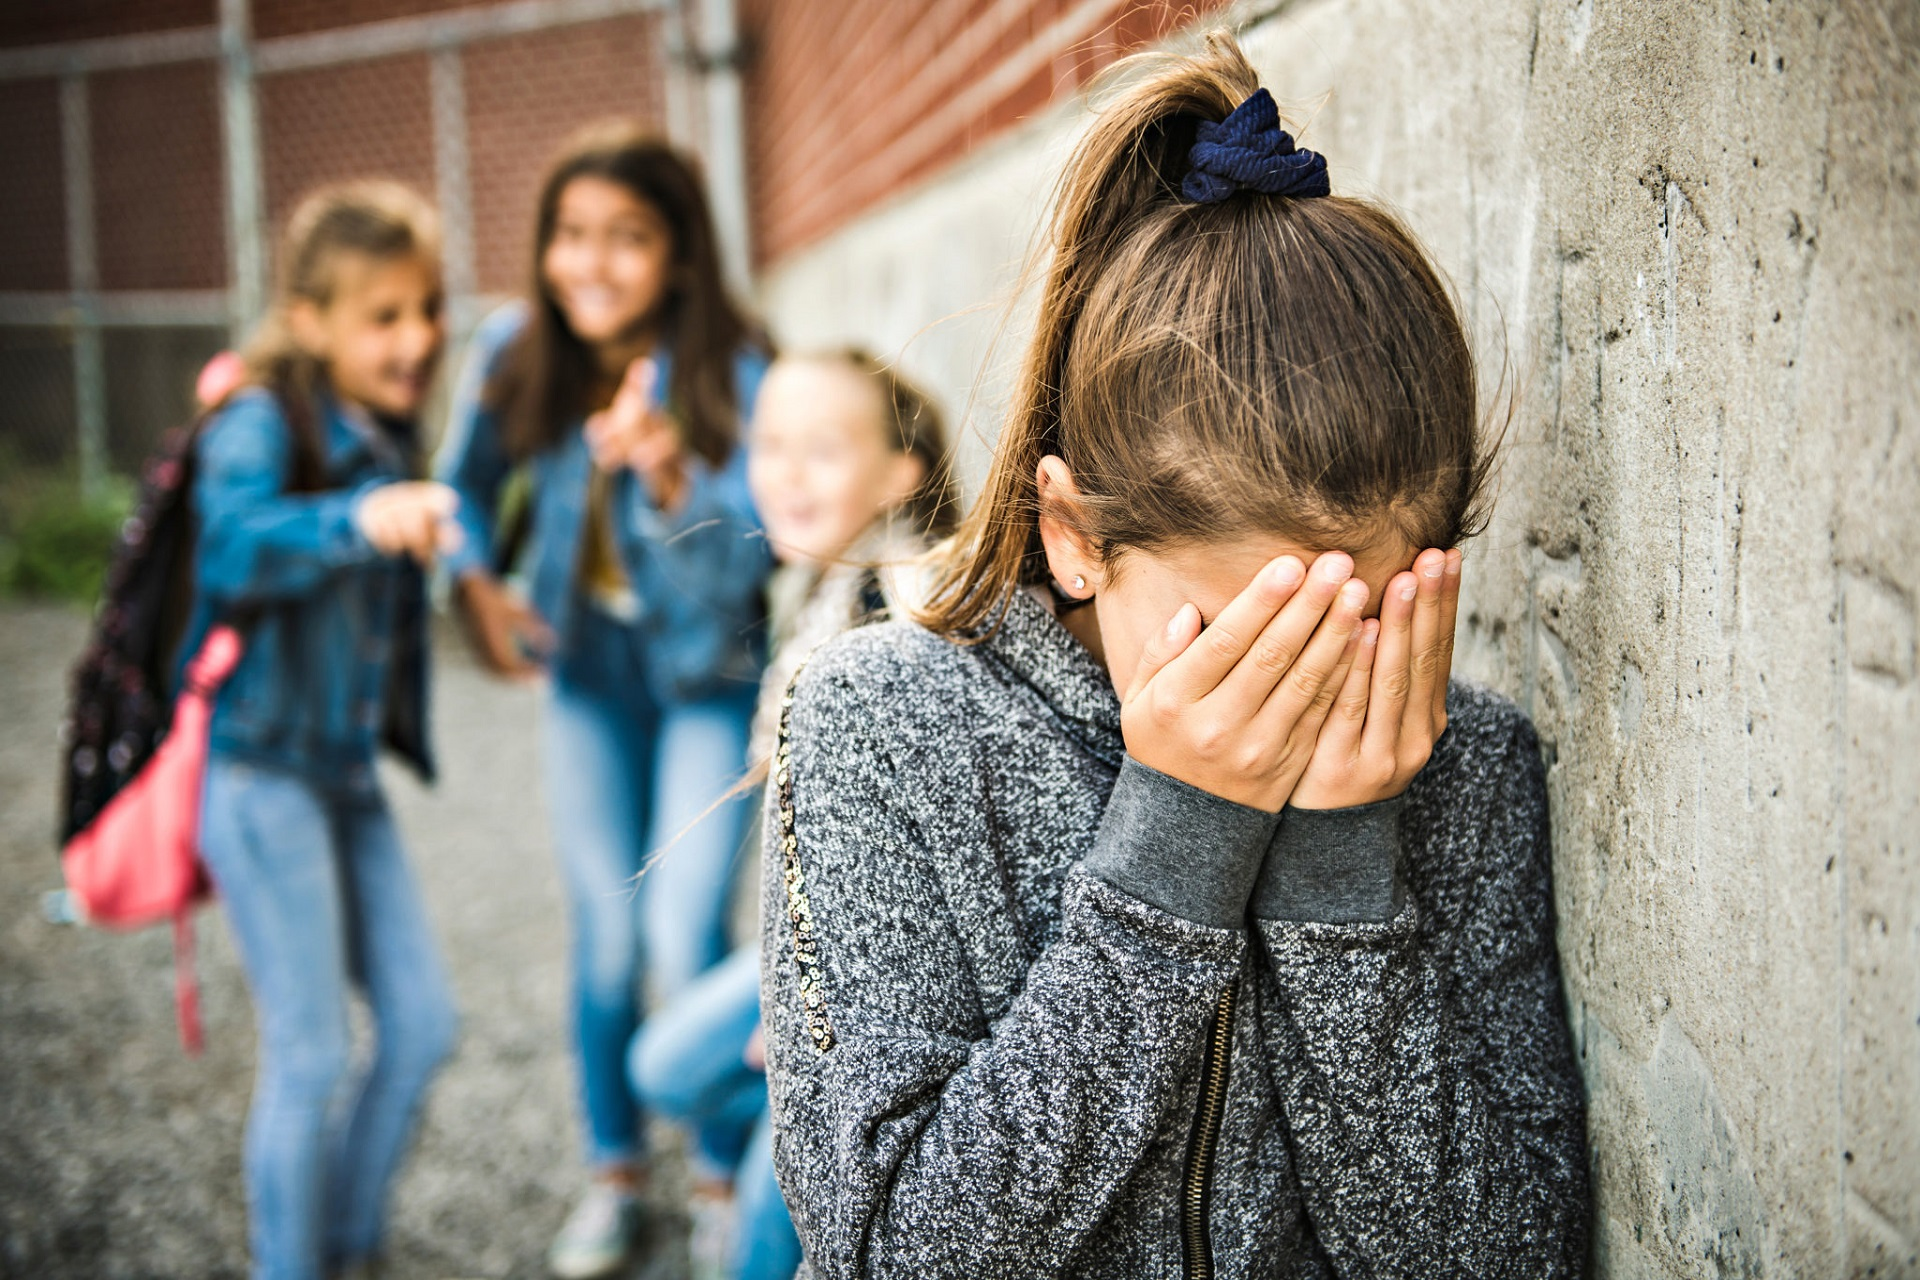 7 Tips for Dealing with Bullies